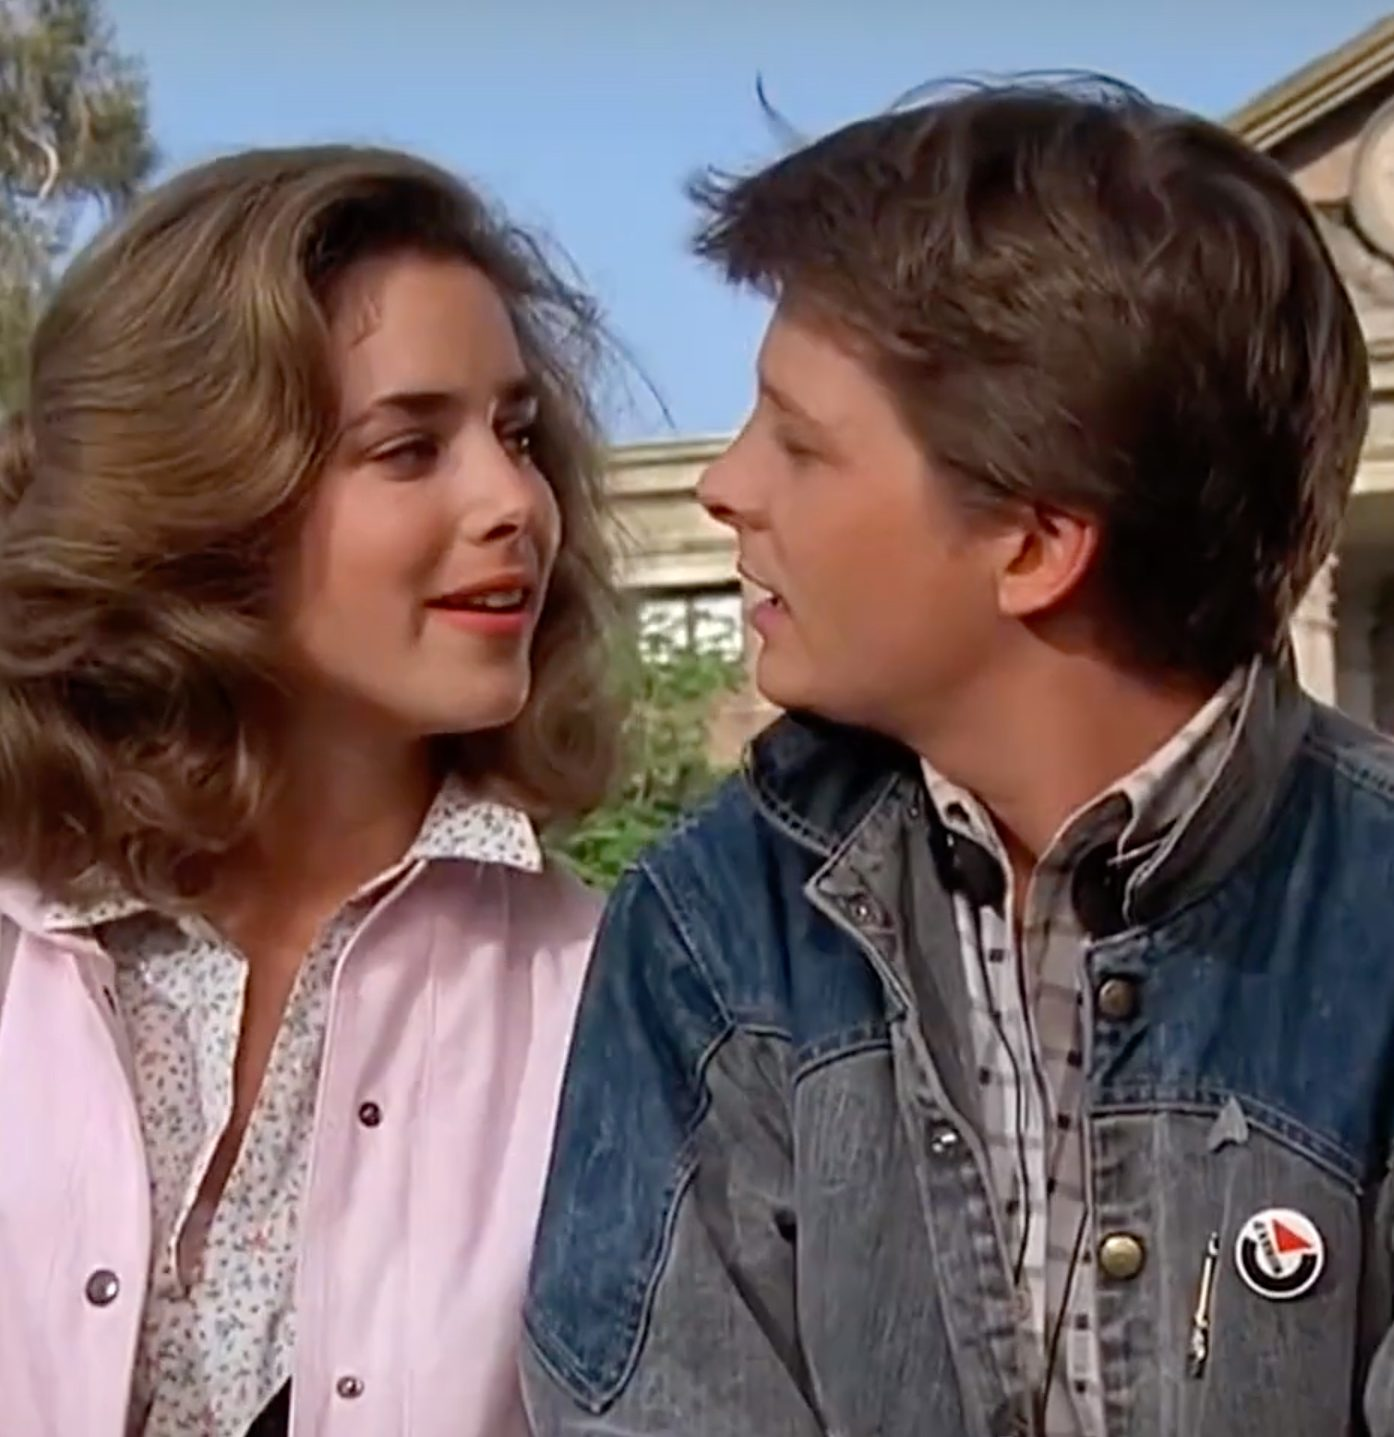 BP6BU46EYRDRBFJGMFHV2TQNIM e1599043803127 Fascinating Futuristic Facts About Back to the Future Part II